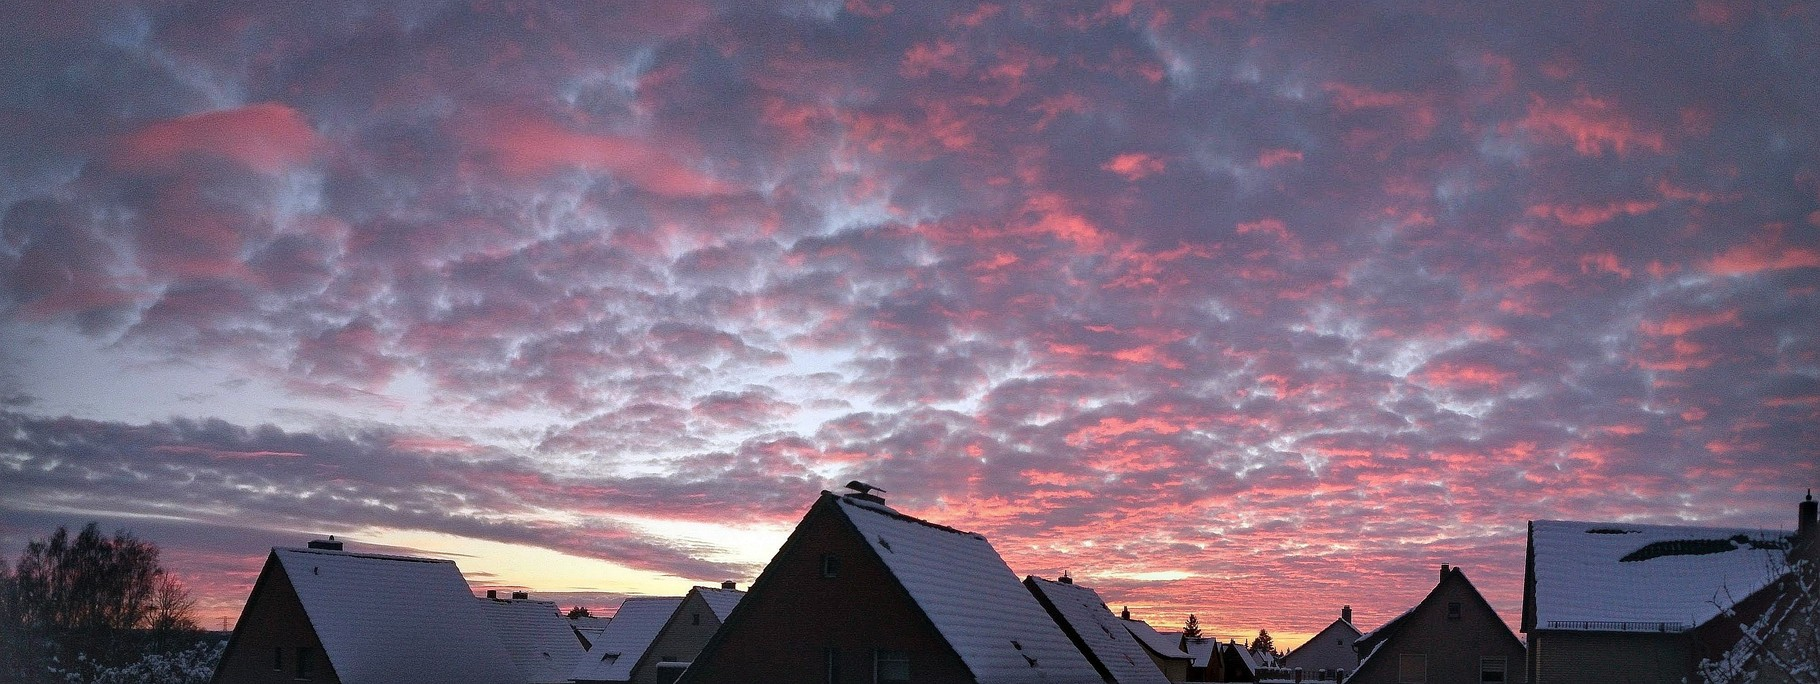 ~ Bild: Pano(d)rama 'Fiery' Winter Sunset in Peine ~